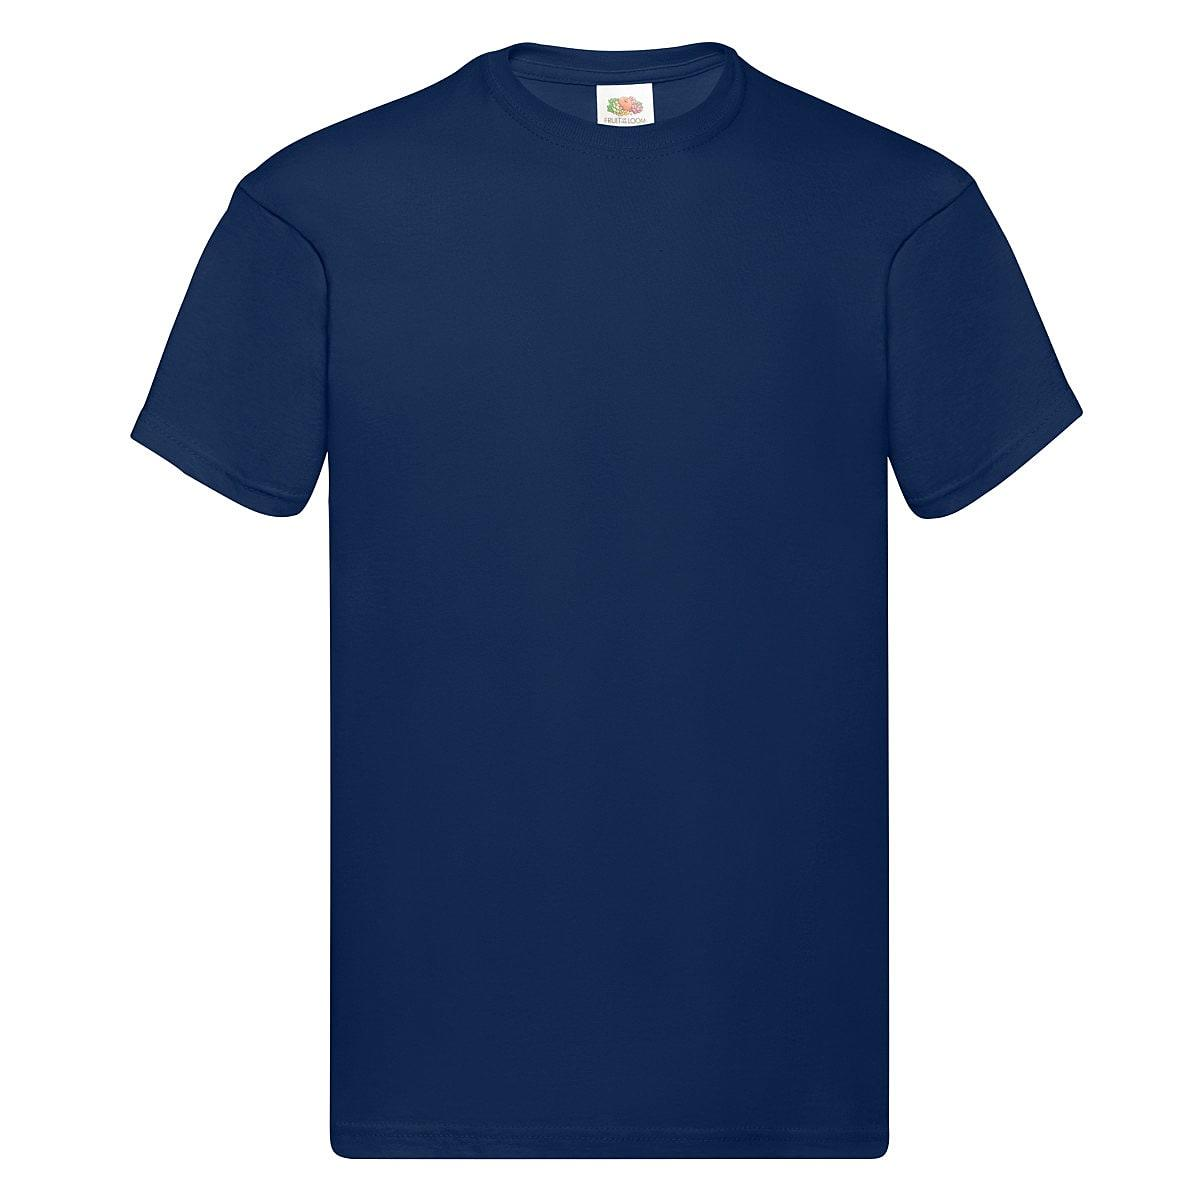 Fruit Of The Loom Original Full Cut T-Shirt in Navy Blue (Product Code: 61082)